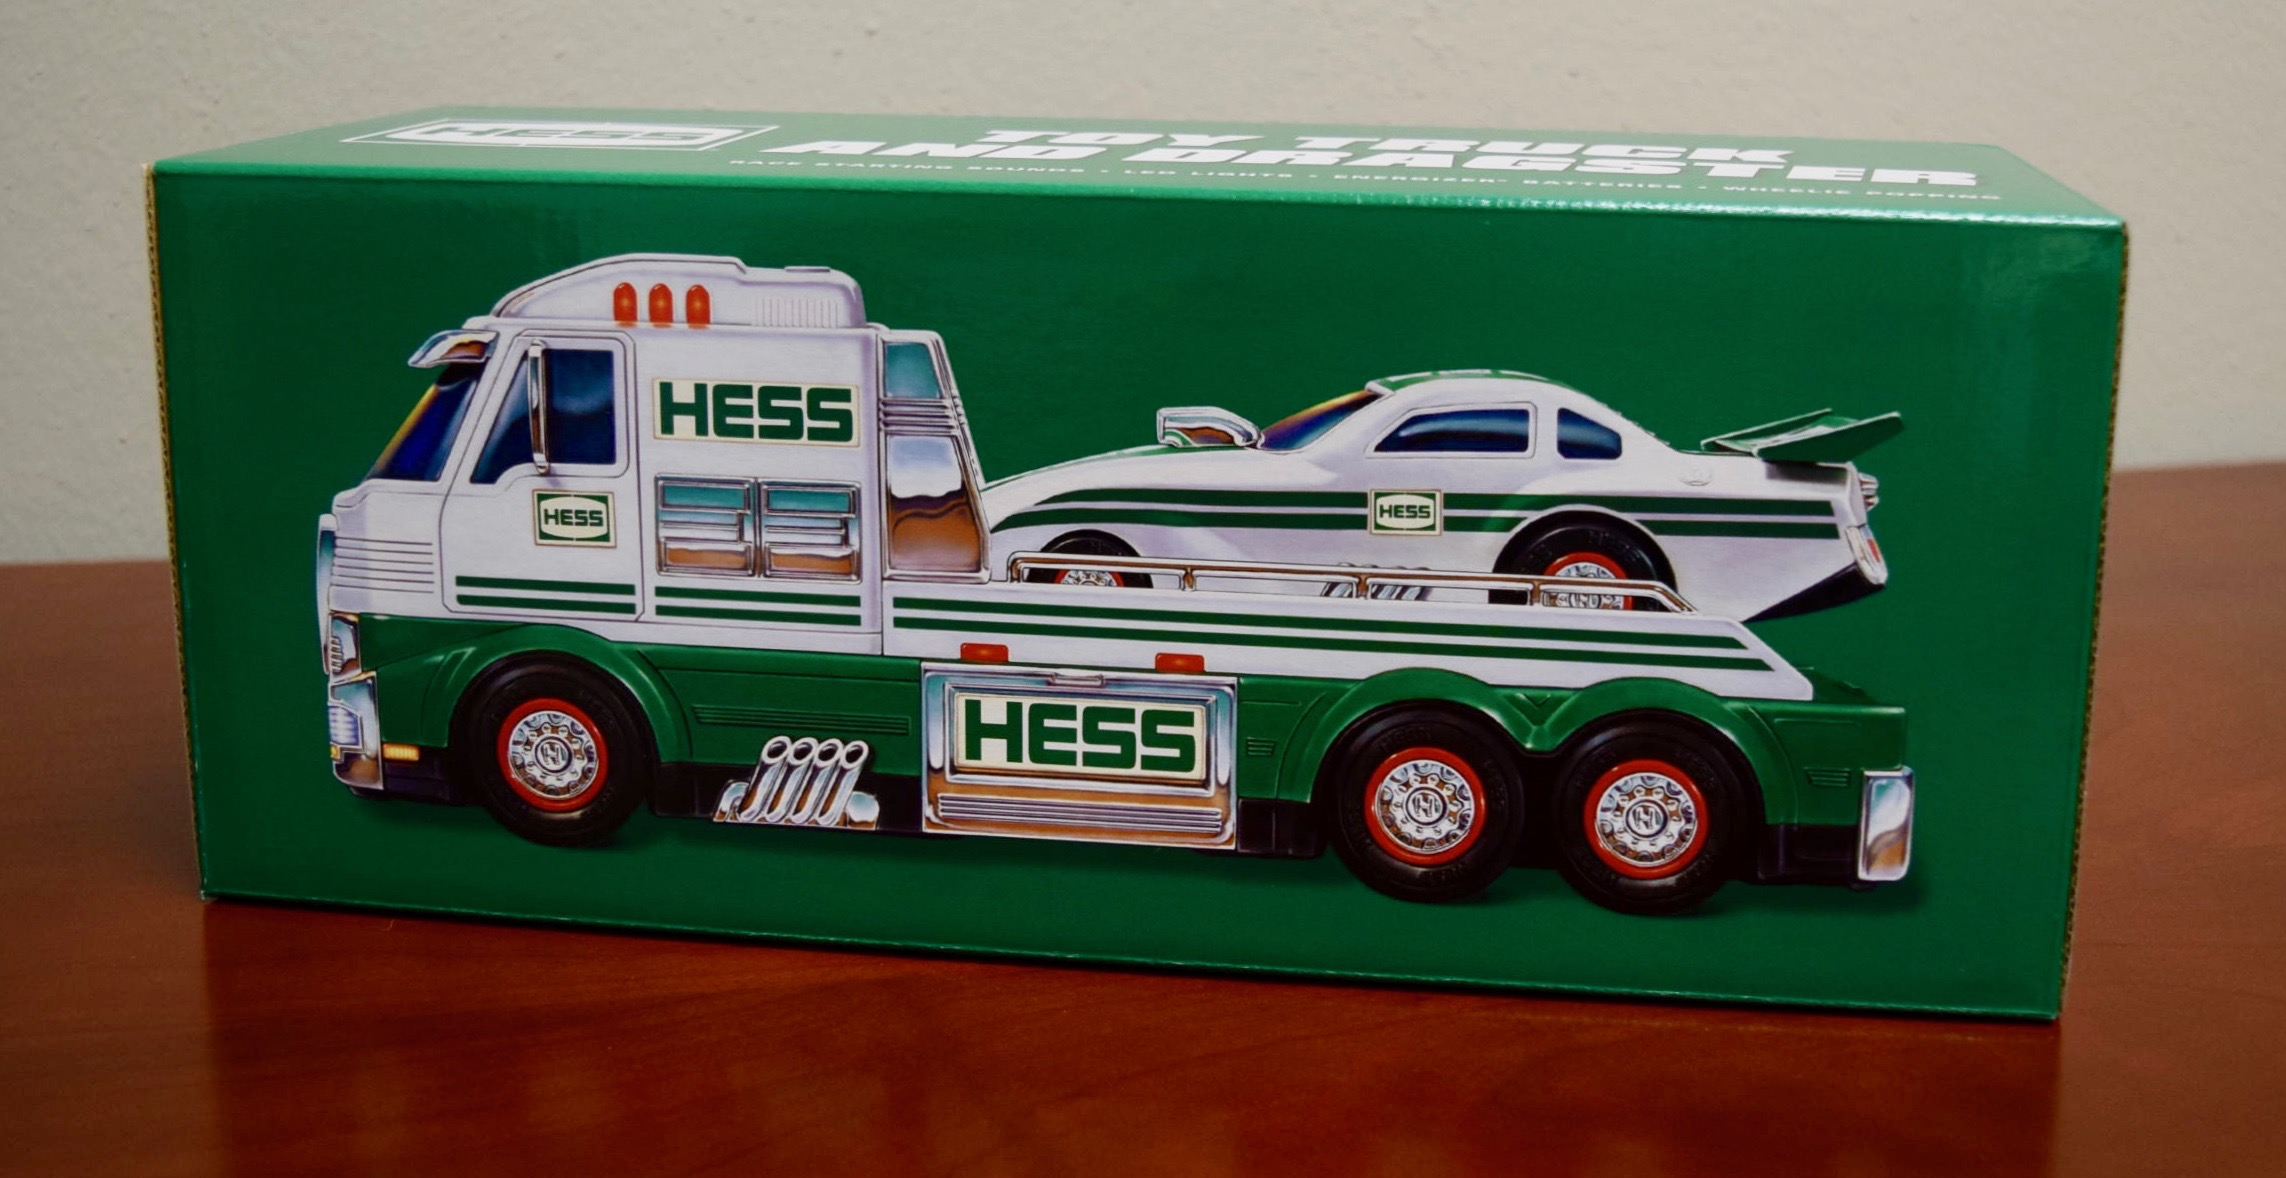 Hess 2016 Truck Replacement Box Only